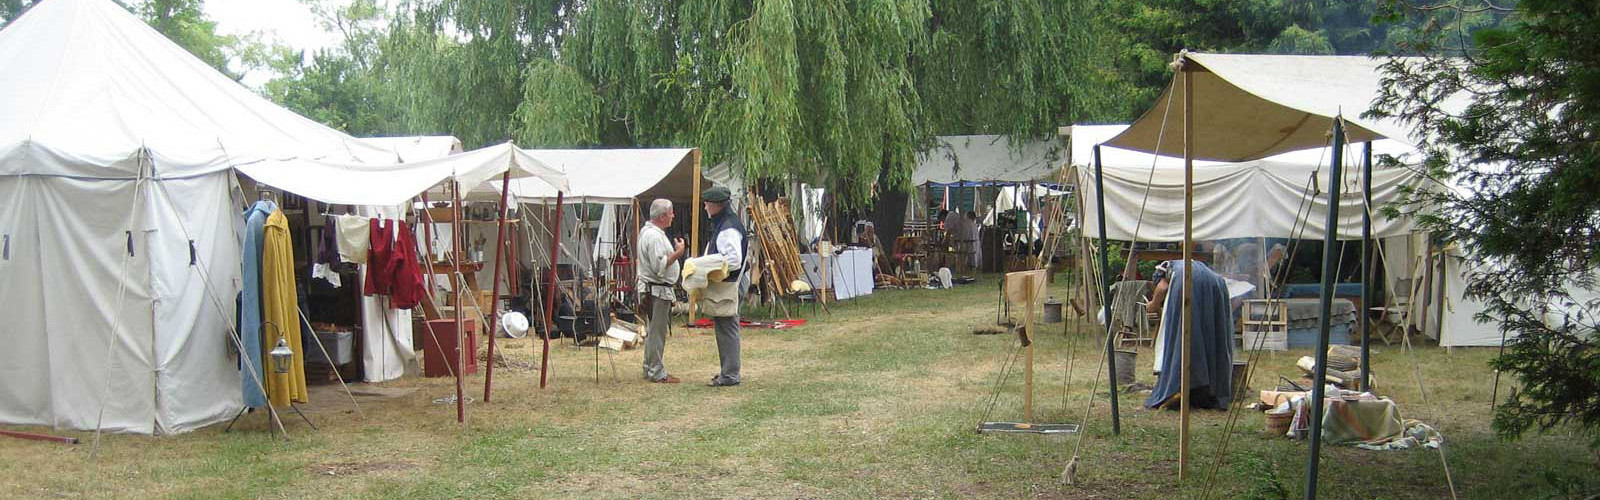 Wasaga Under Siege: River Run, 2011 - Main Encampment